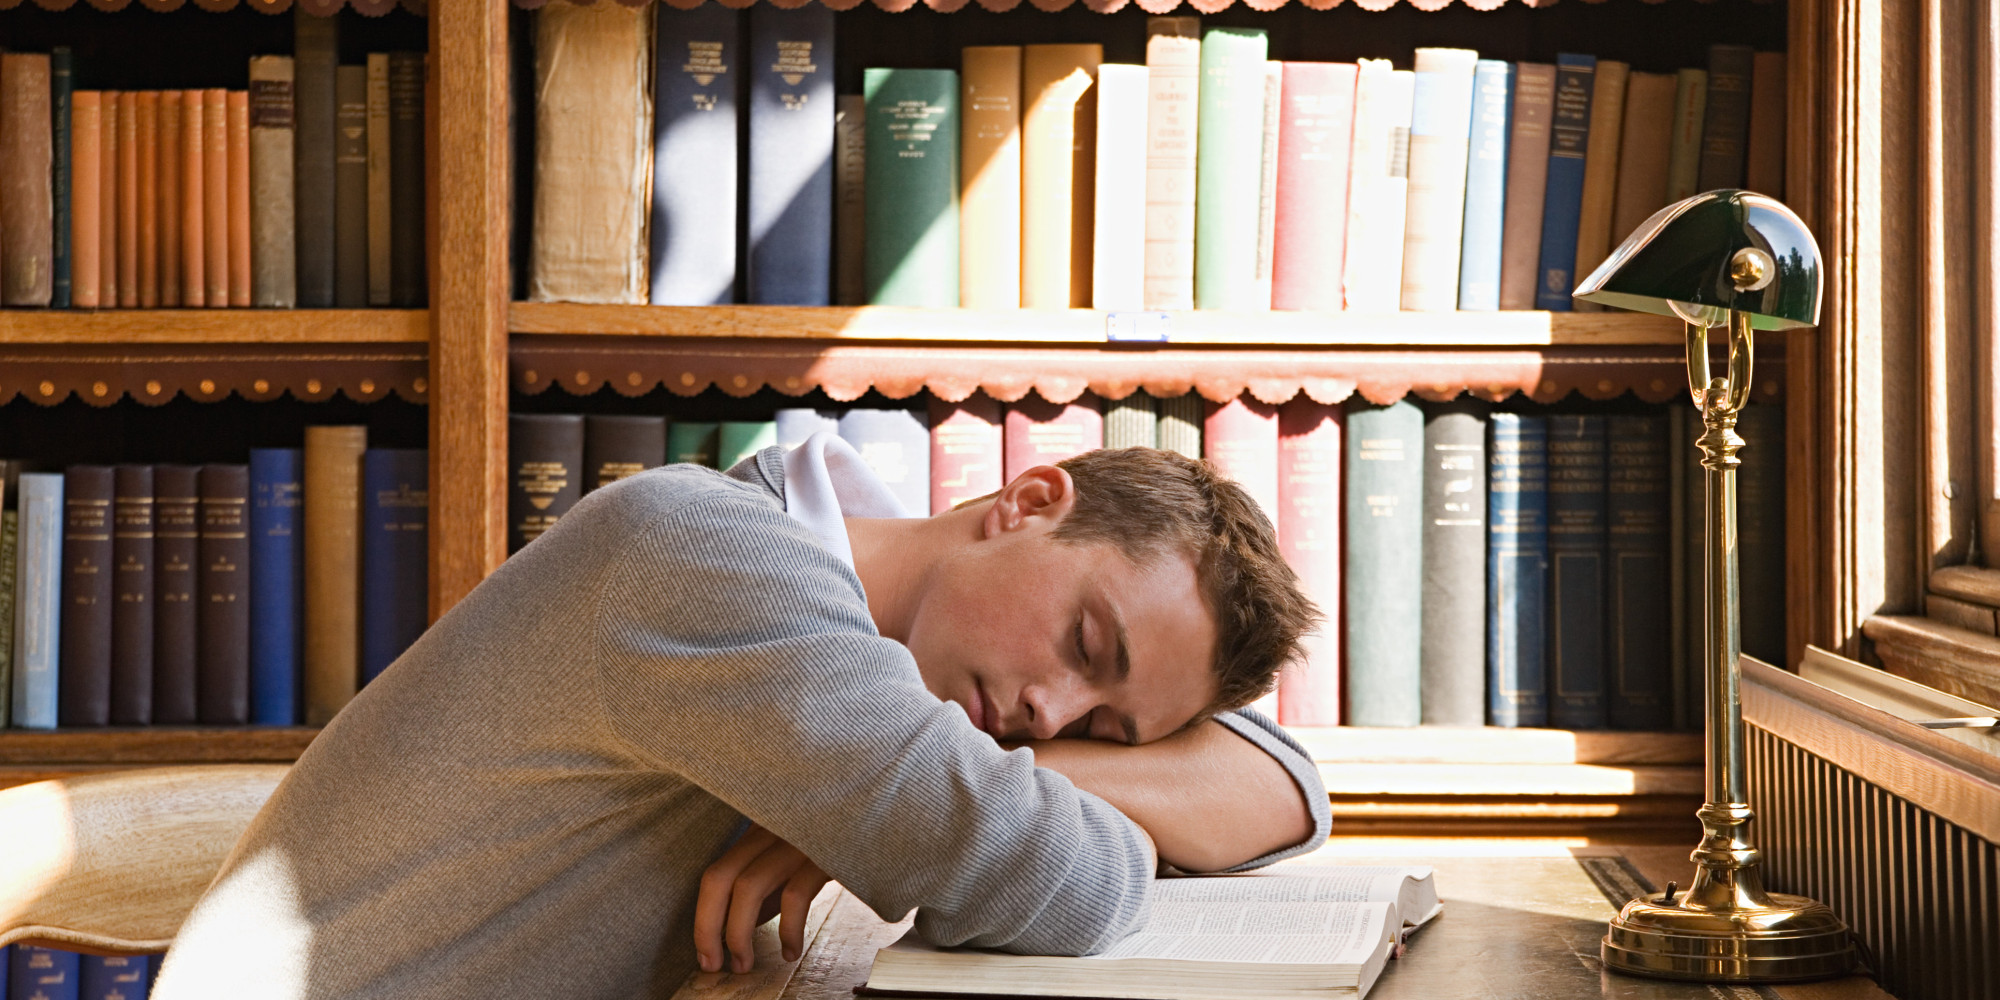 the ivy league has a sleeping problem